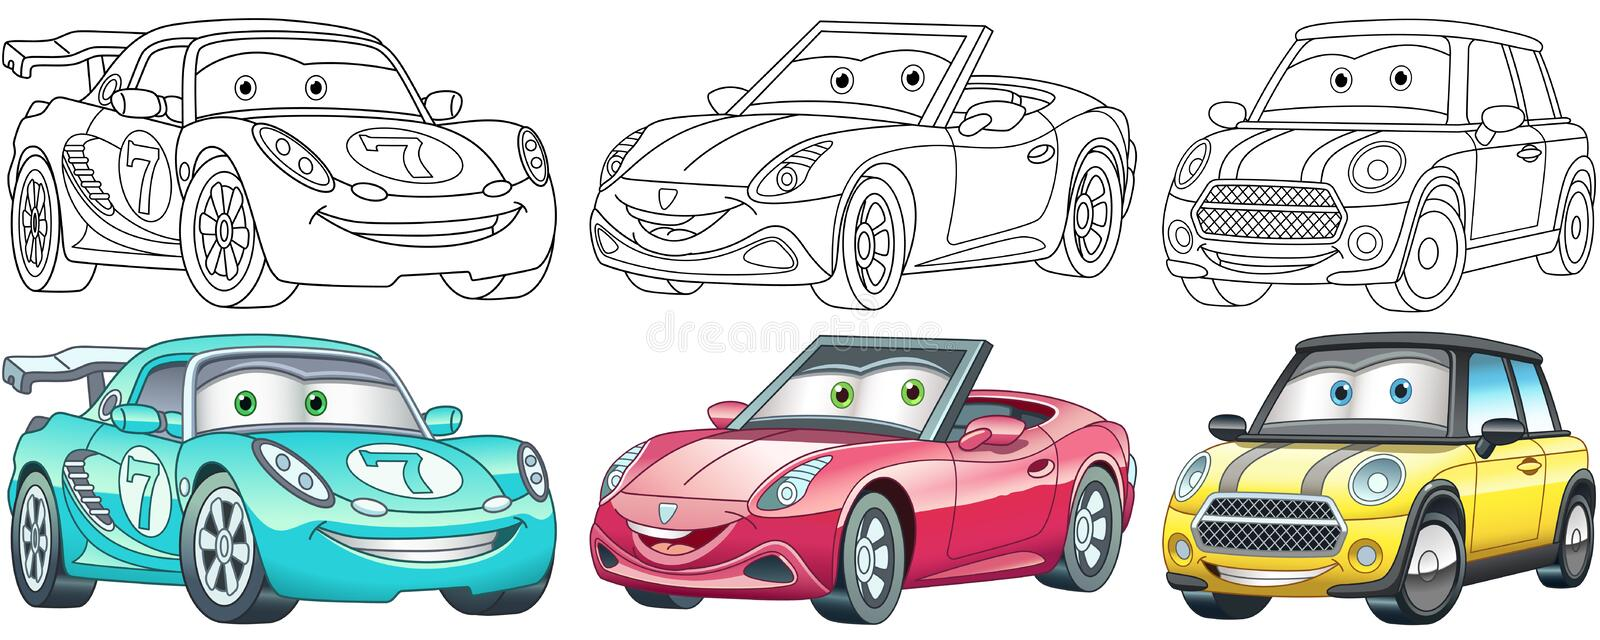 Cartoon Cars Coloring Pages Set Stock Vector - Illustration Of Book, Icon:  184754109